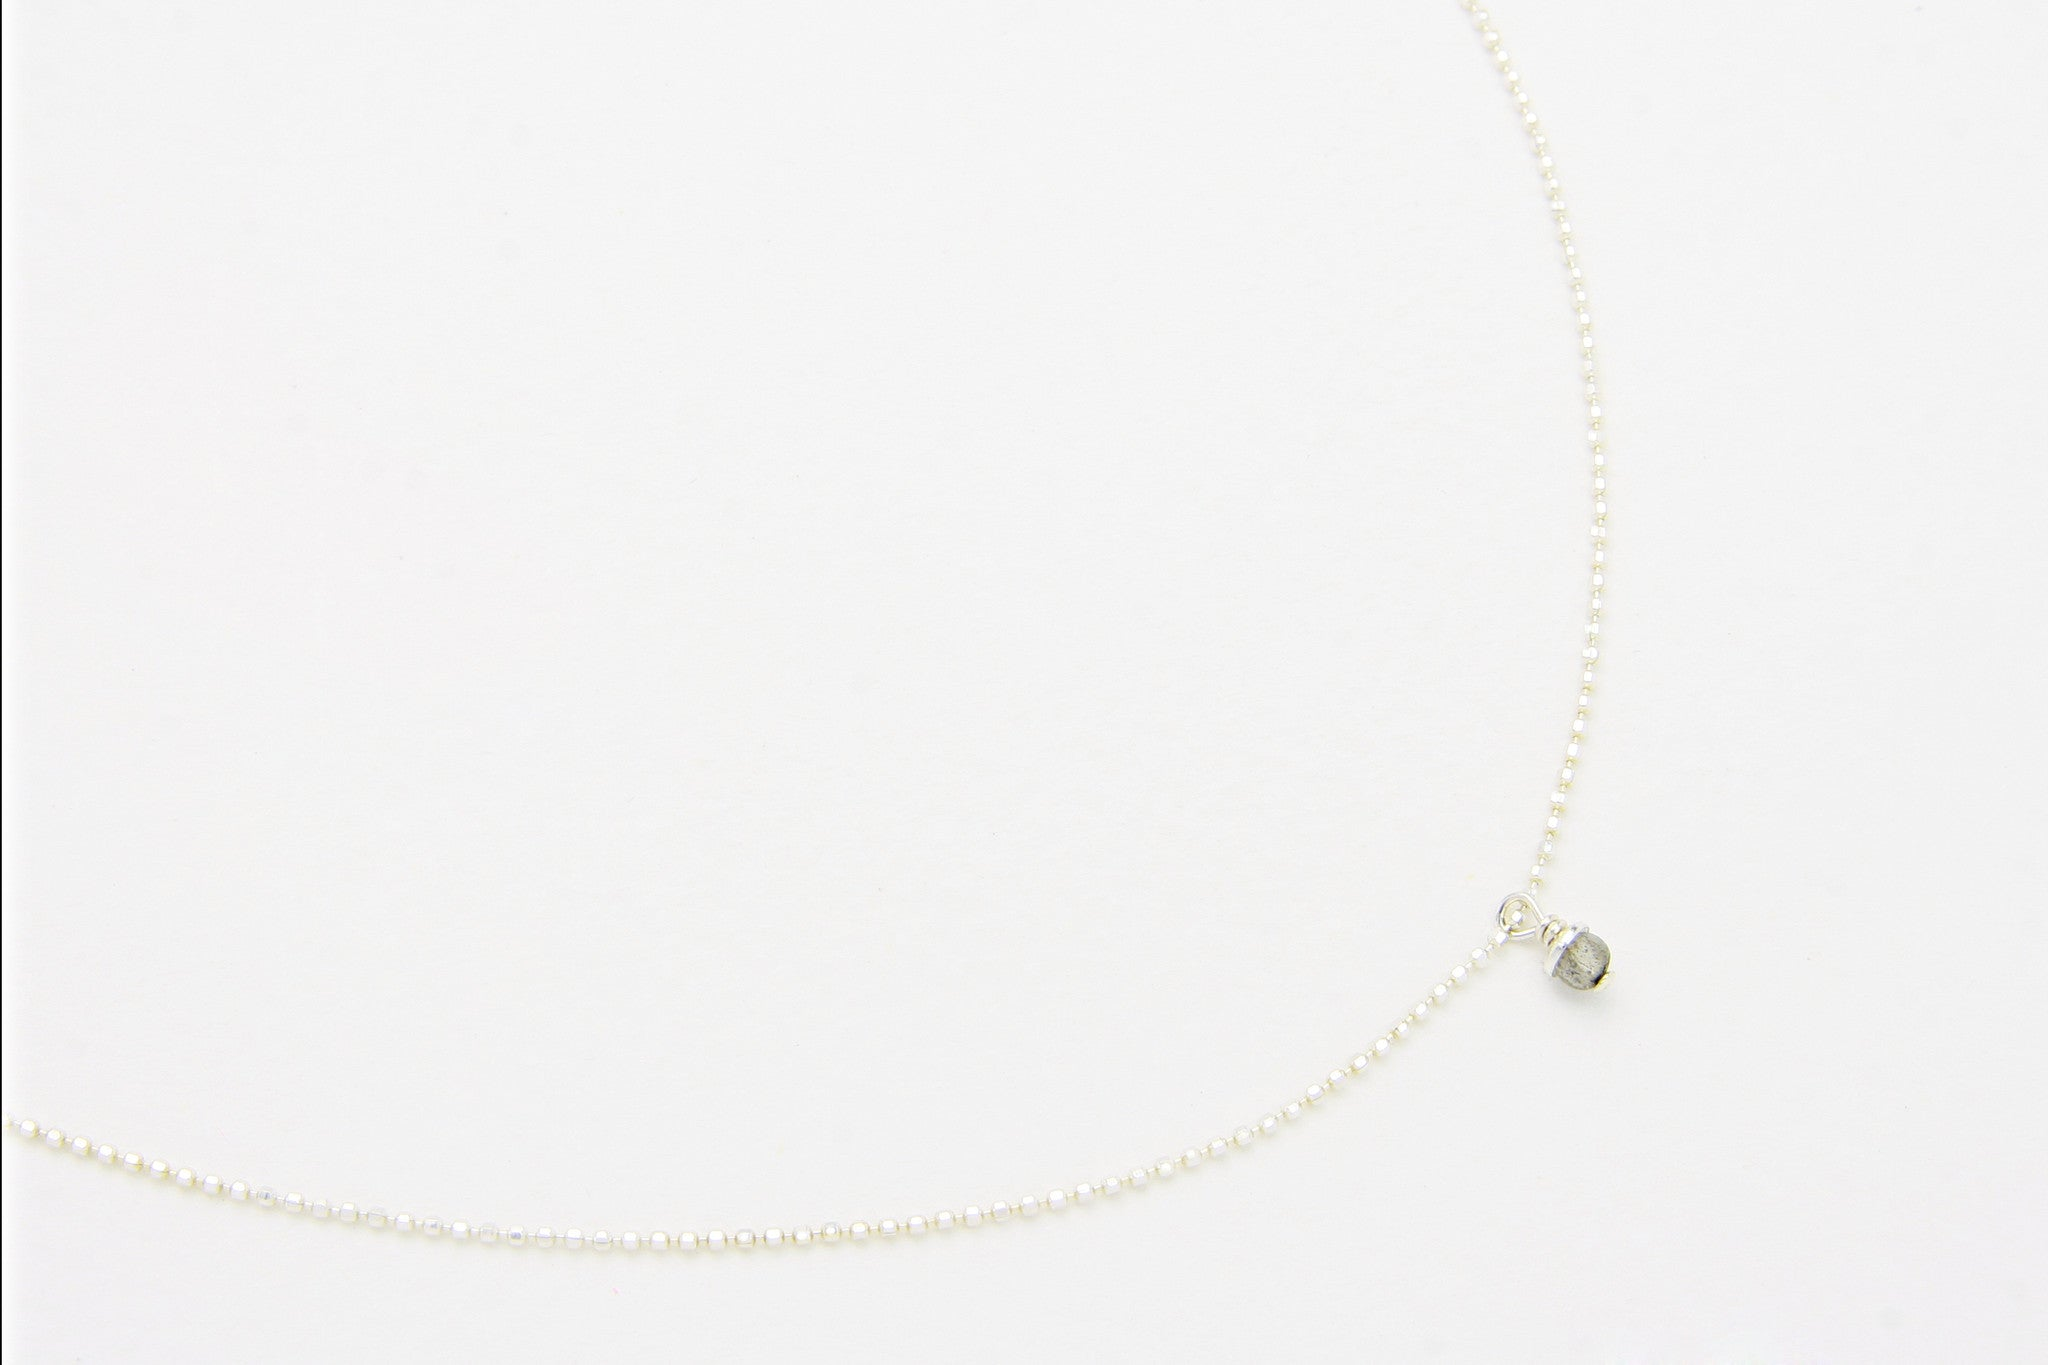 ....Kette FINE PEARLS Sterling Silber..Necklace FINE PEARLS 925 Sterling Silver....